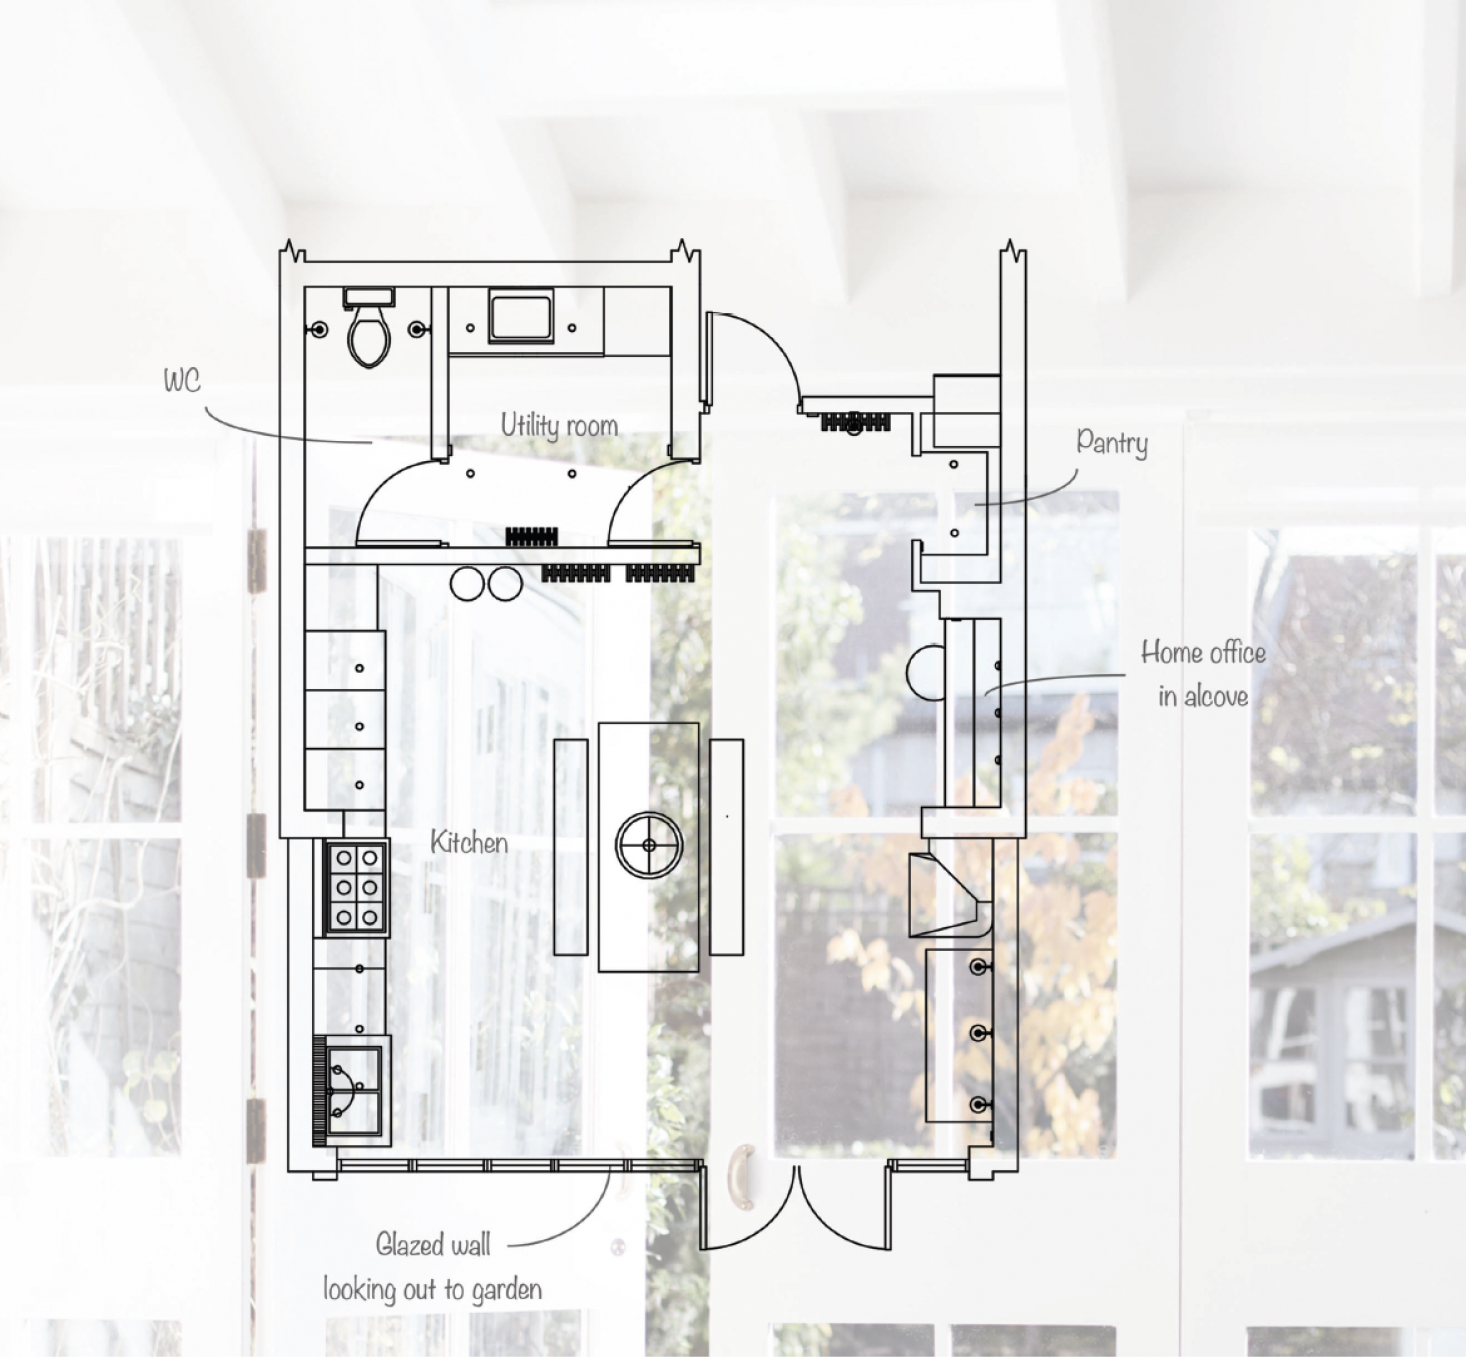 Kitchen Utility Room Layout: New-old Design In An Eat-in Kitchen Addition By Mark Lewis